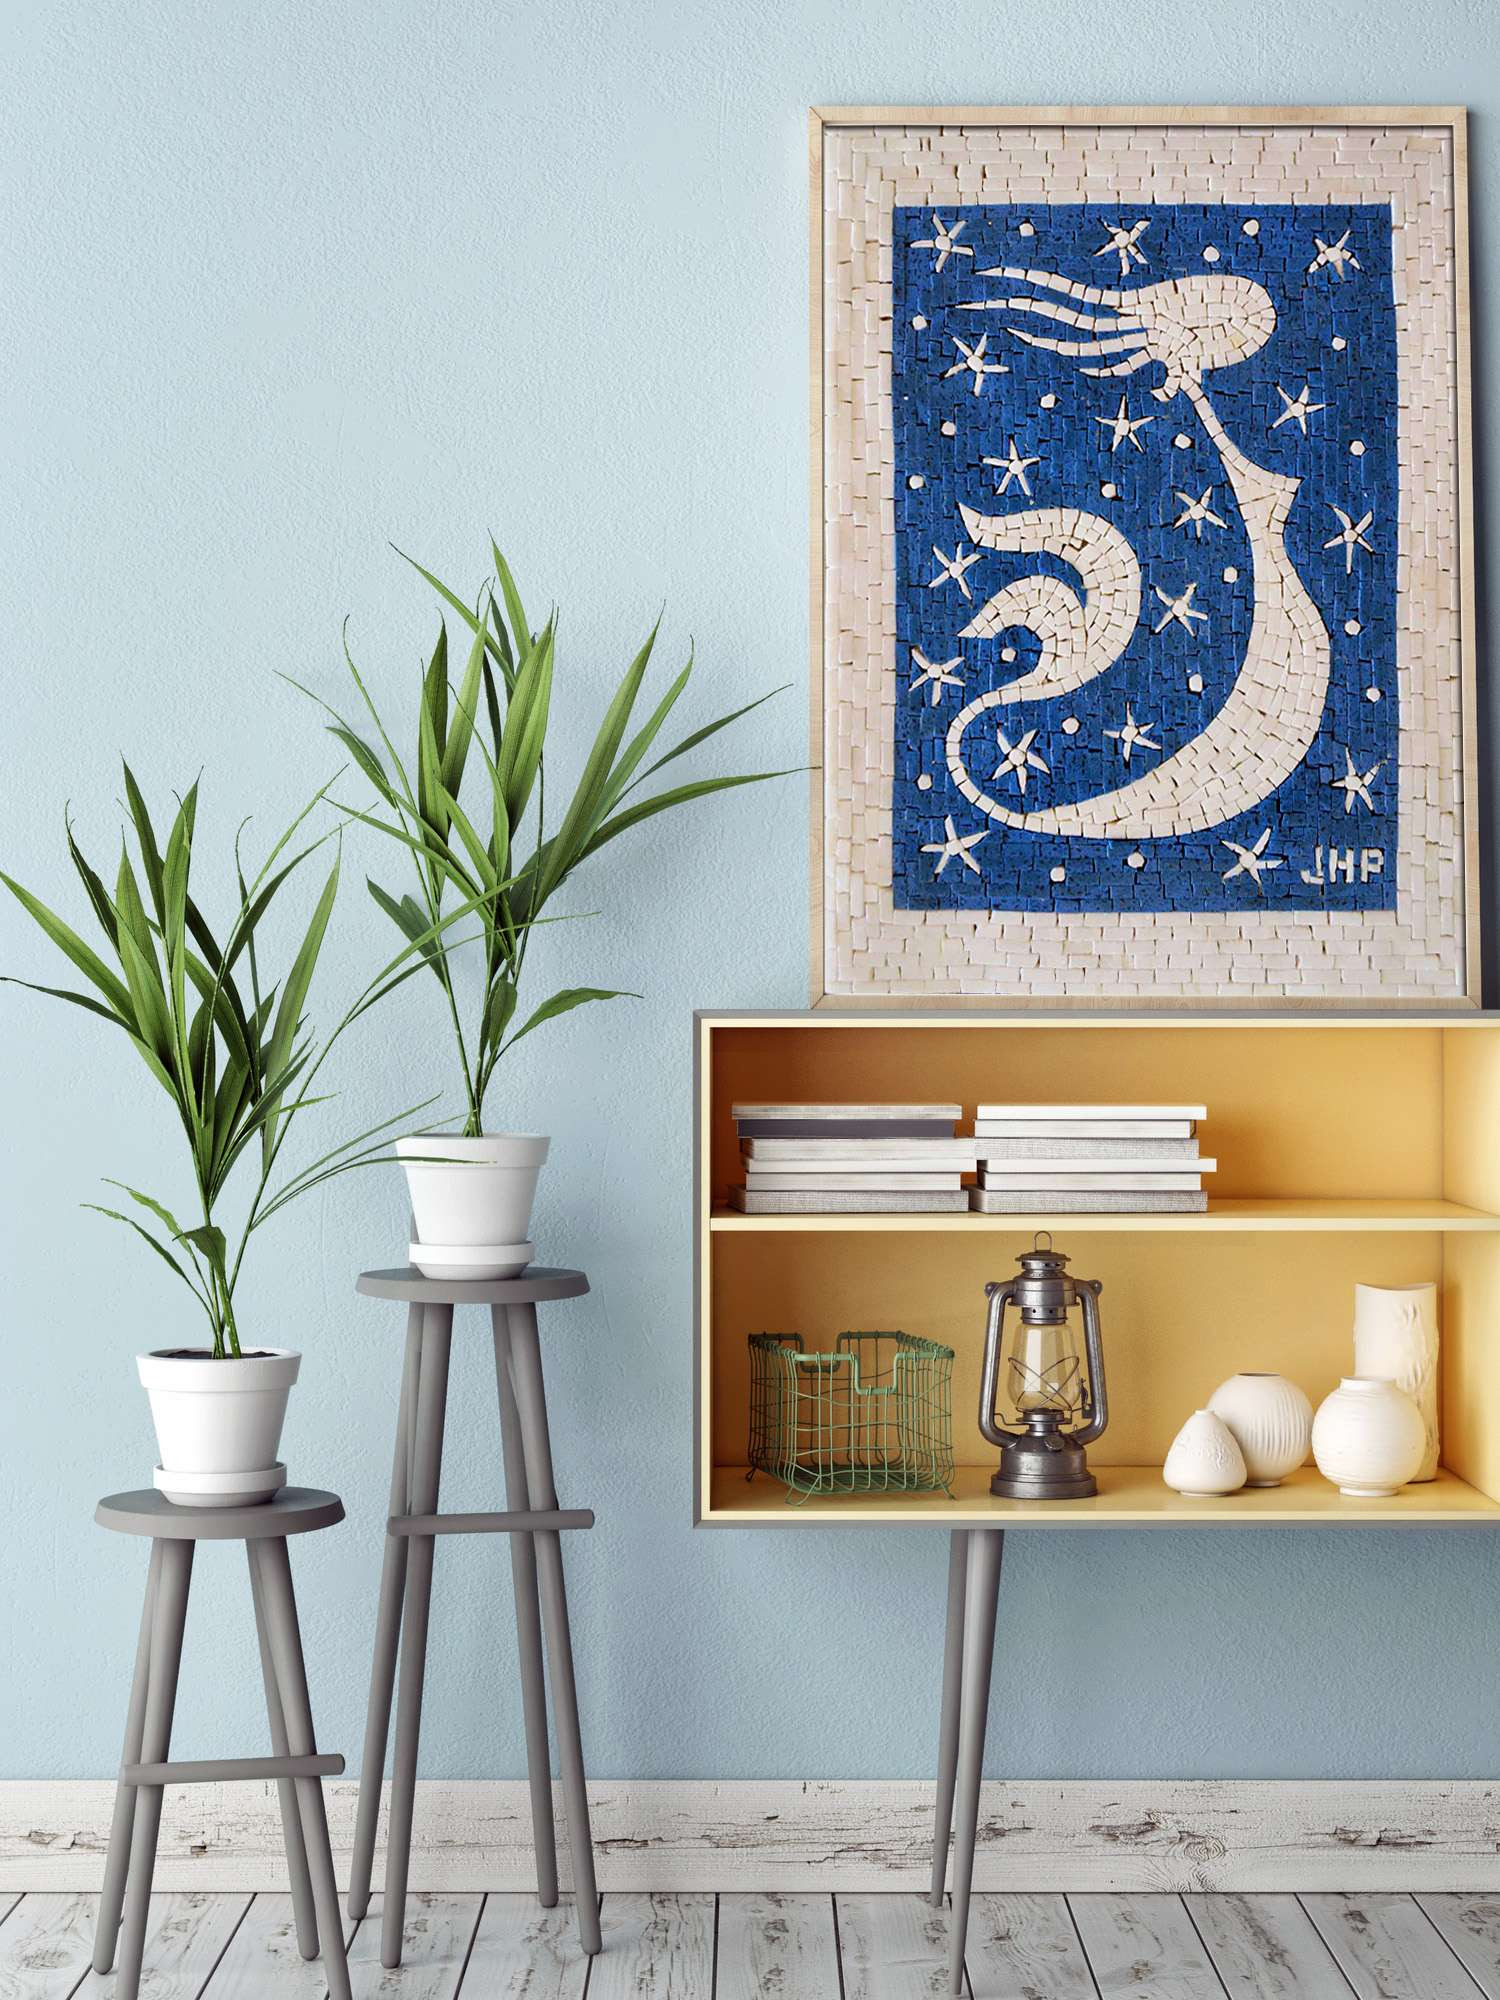 Unique Ways To Decorate Your Home With Mosaic Wall Art ...